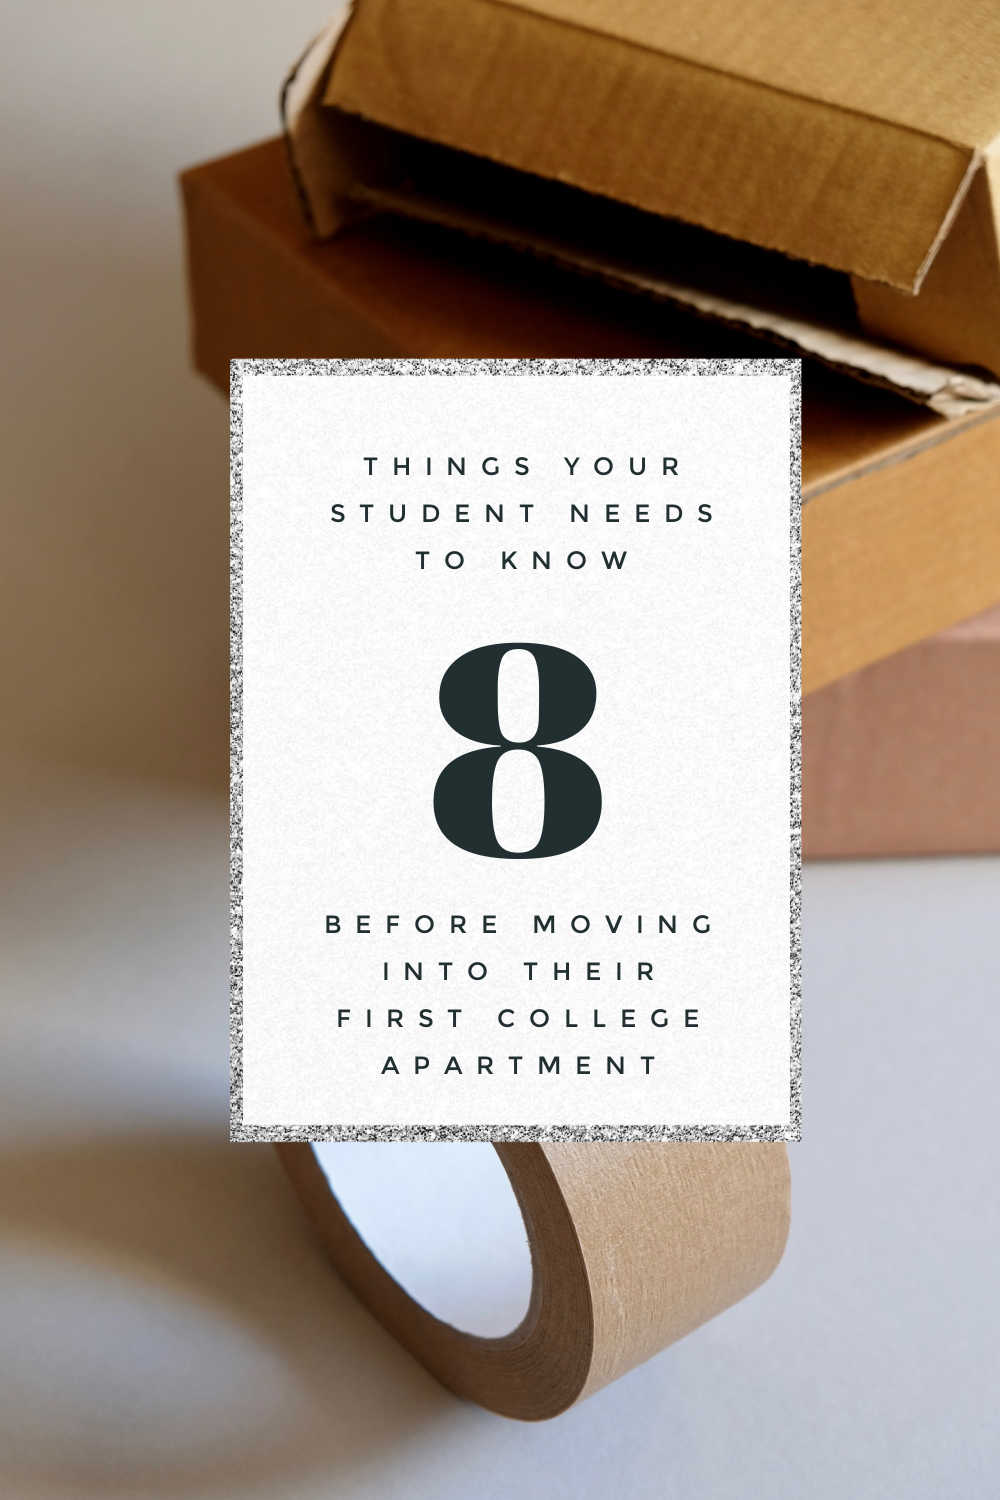 8 THINGS TO KNOW BEFORE MOVING TO AN APARTMENT